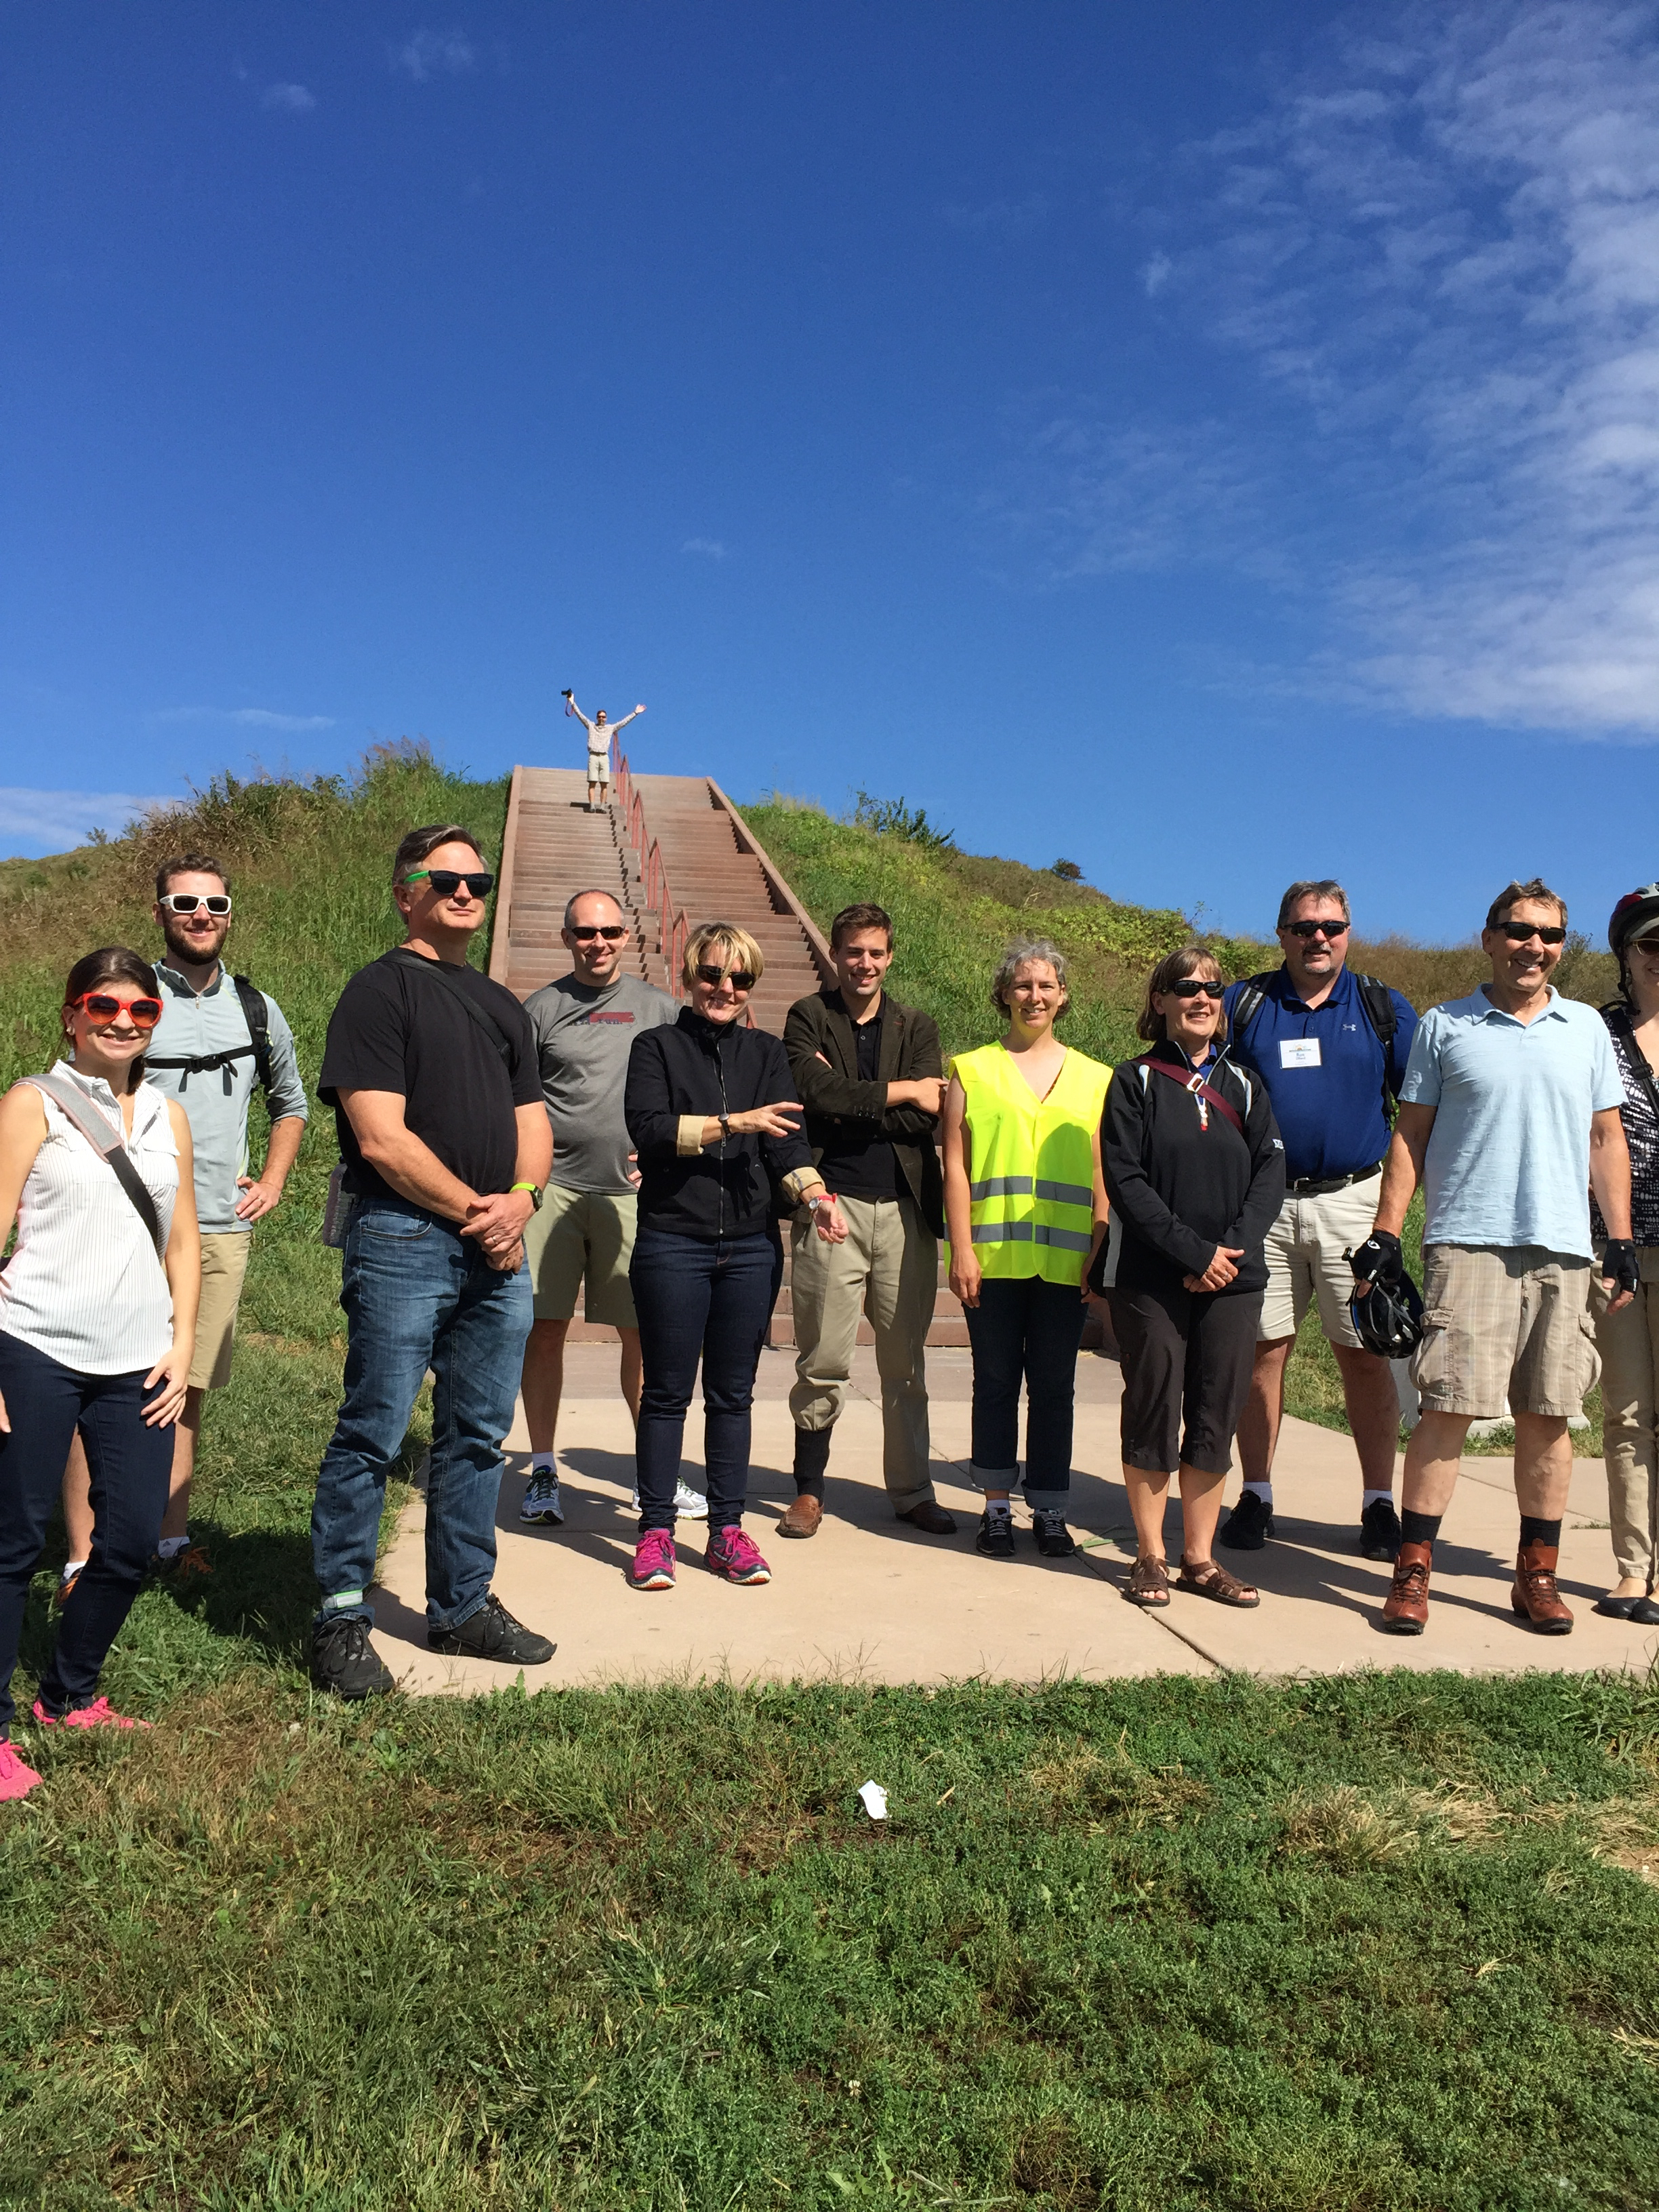 Group photo in front of Cahokia Mounds (me cut off on far right)